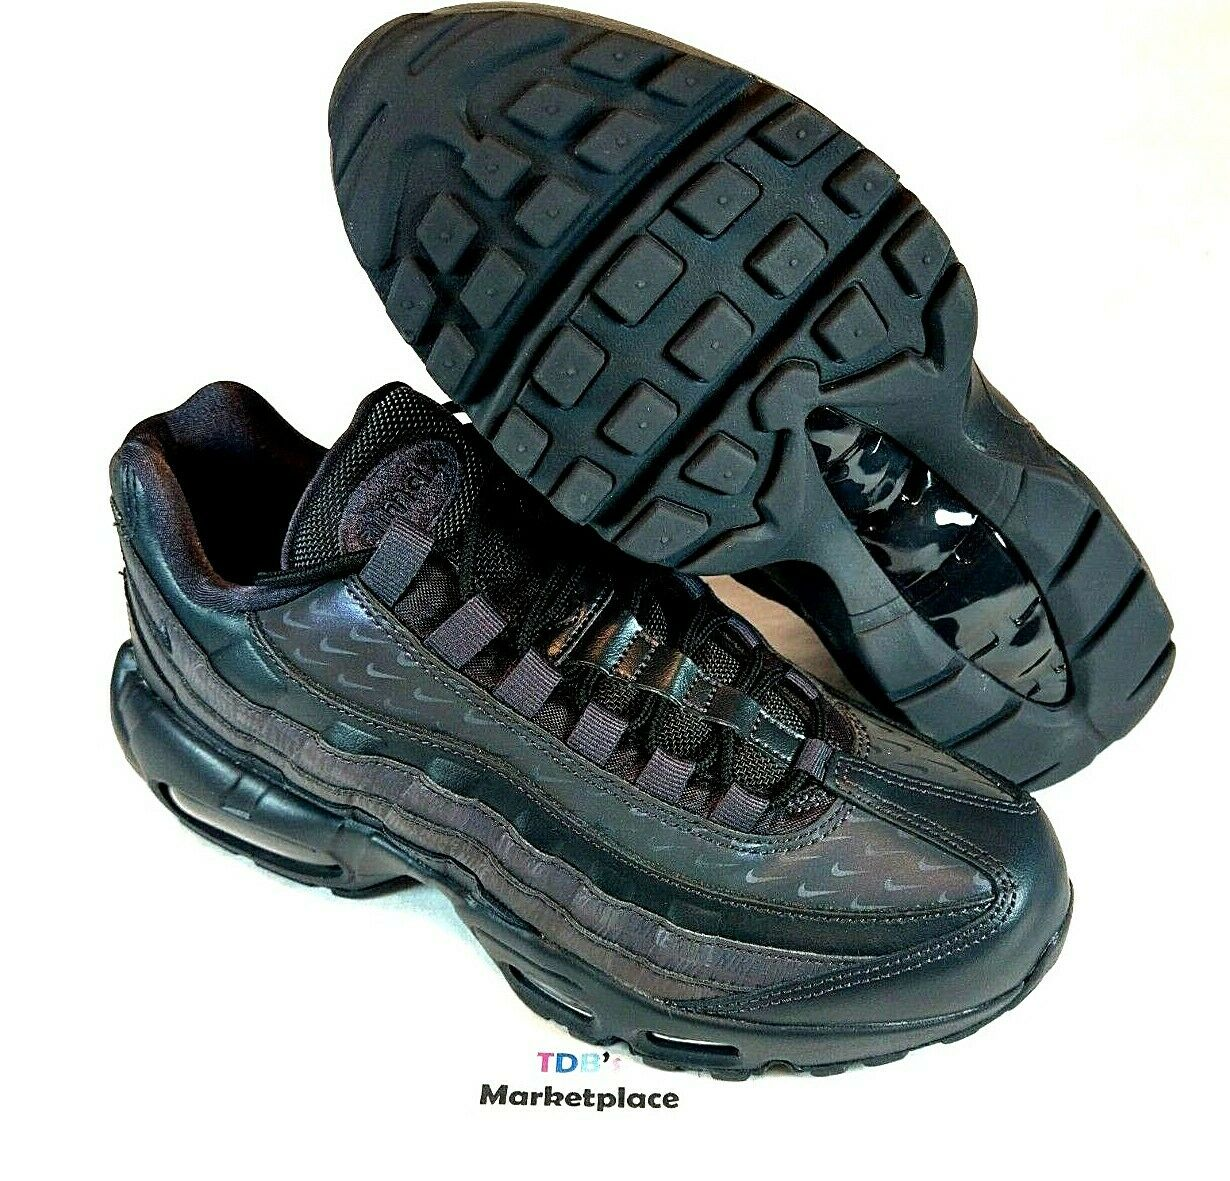 Nike Air Max 95 LX Oil Grey Reflective AA1103 004 Just Do It Women's Size 8